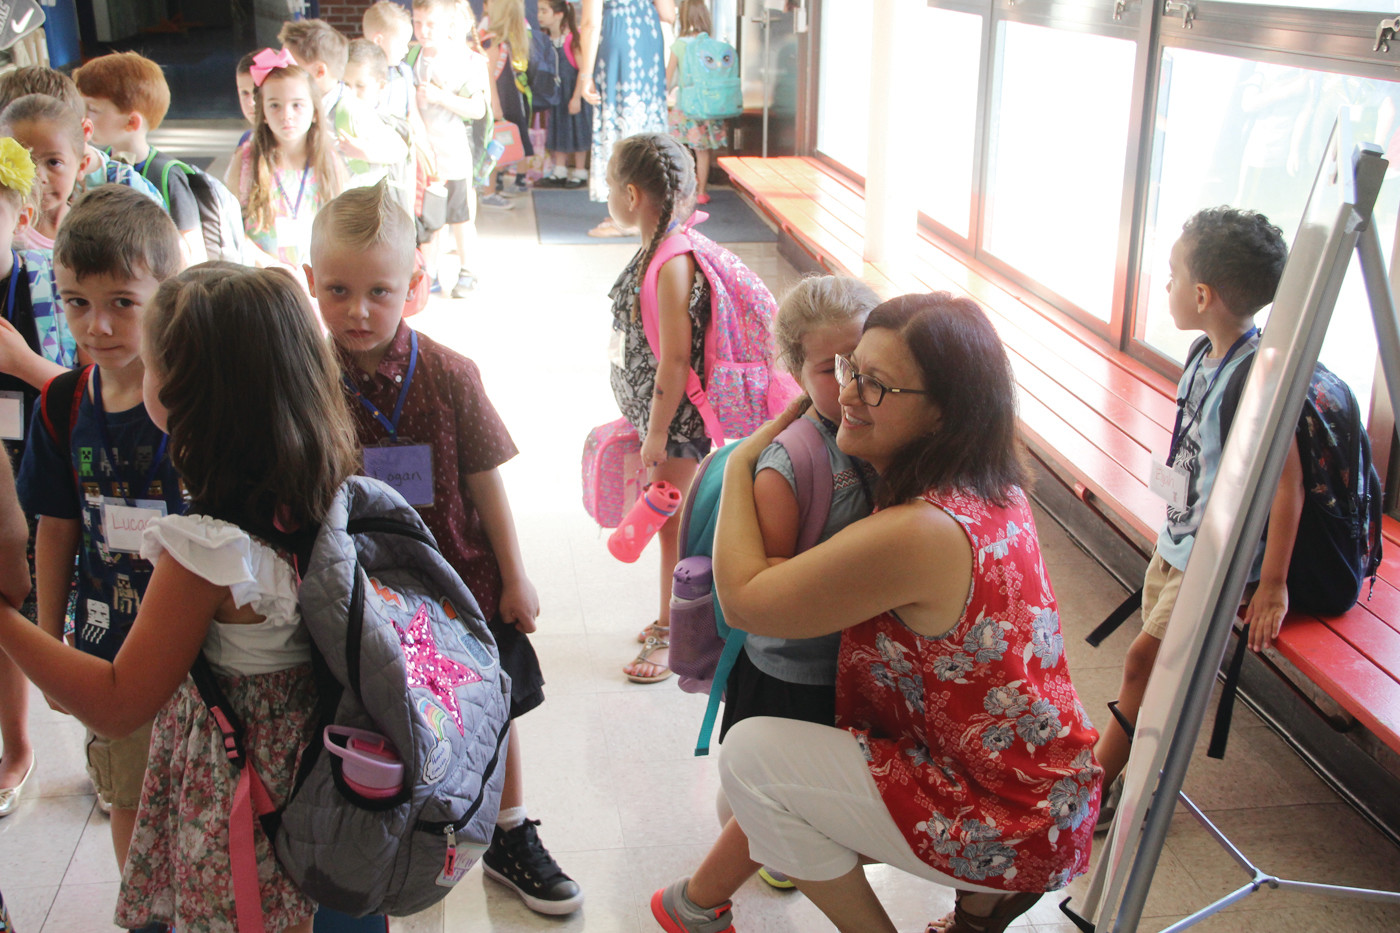 IT'S ALL BETTER NOW: In this sequence, Sherman School teacher aid Amy Harnedy consoles a tearful Emma Kaplan and, after a comforting hug, leads her to her classroom.